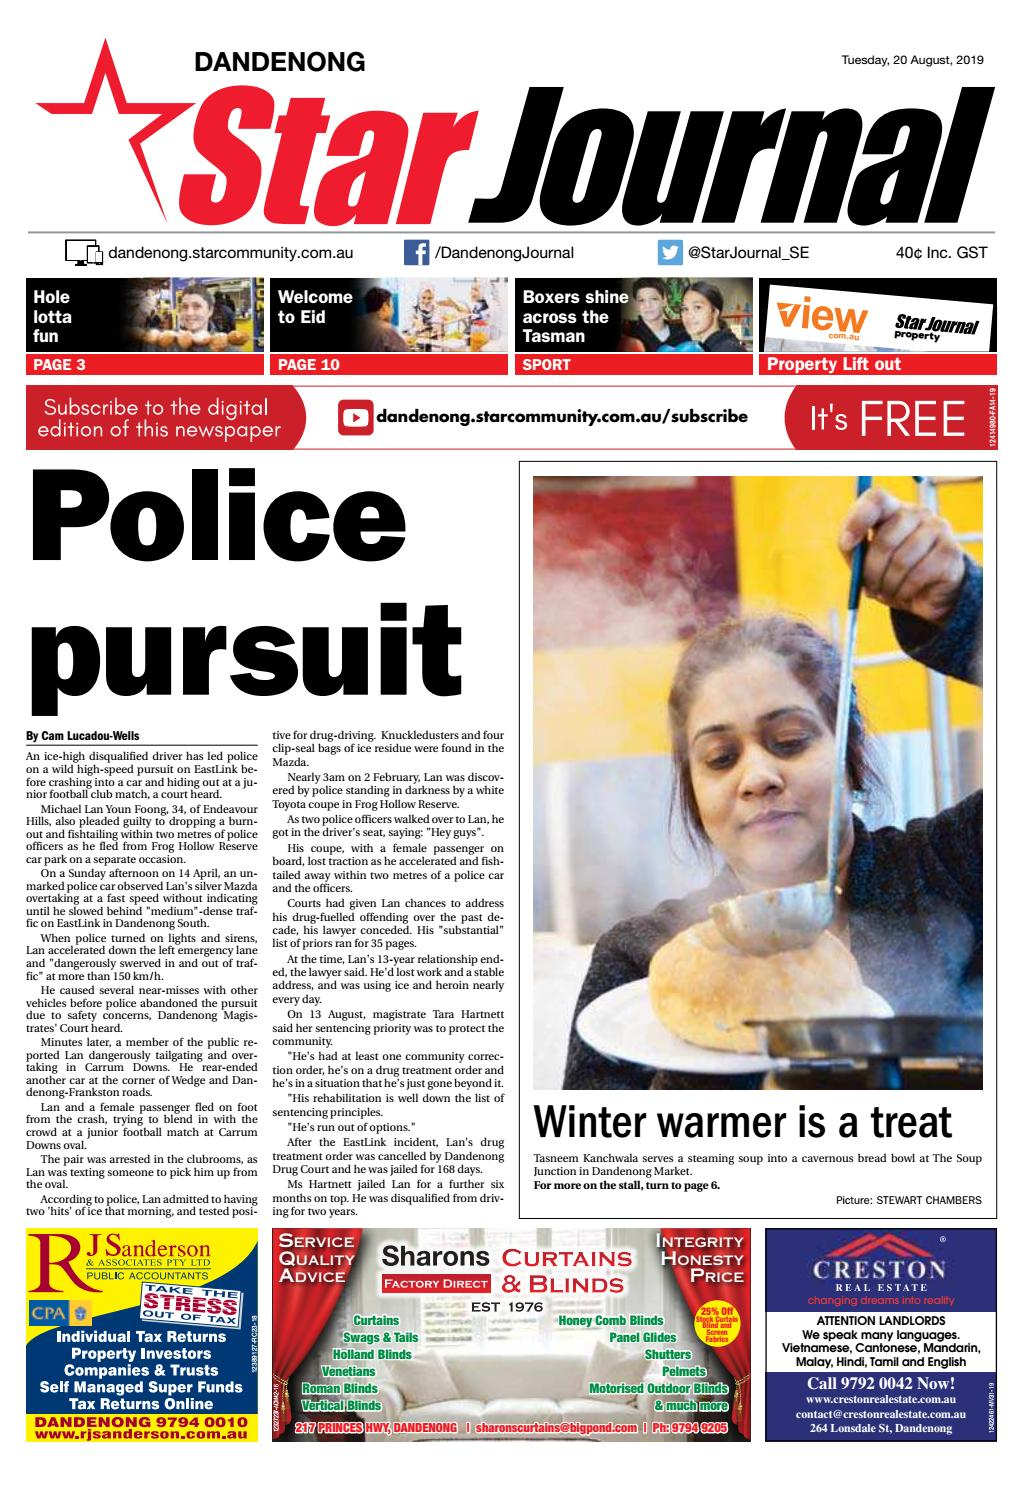 Dandenong Star Journal - 20th August 2019 by Star News Group